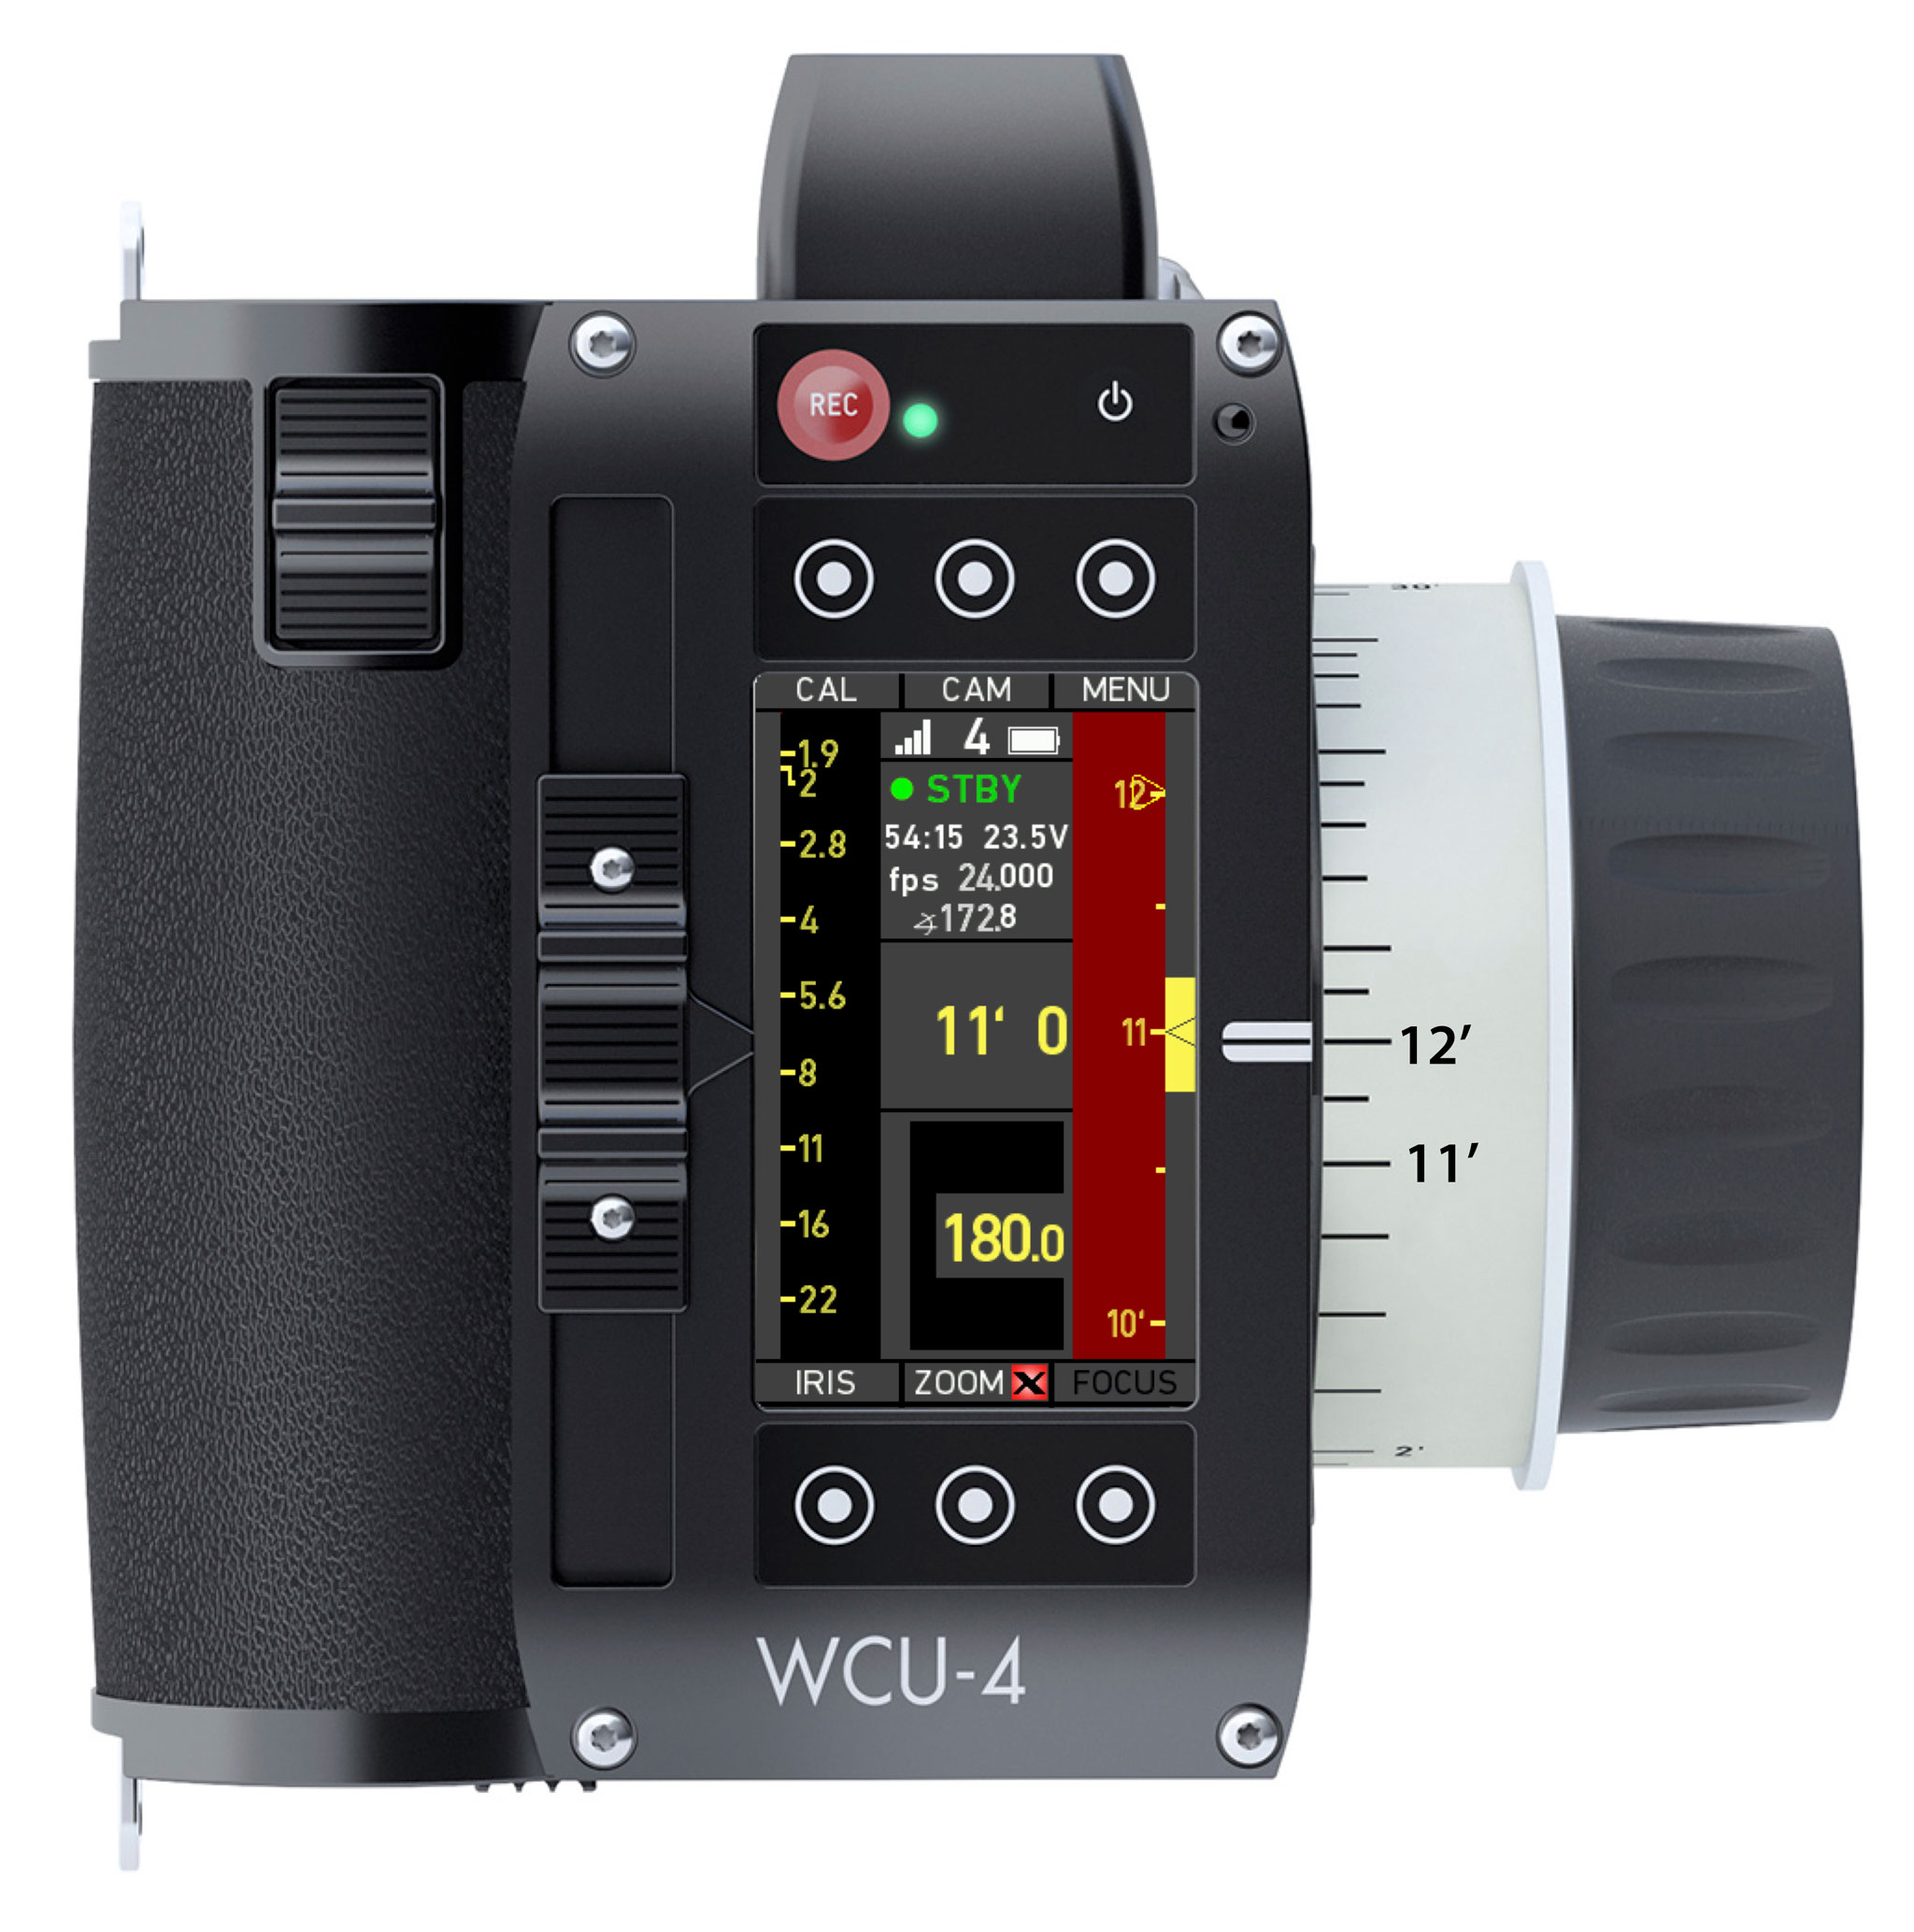 Cinec Cam Gentle Touch Michaelieclark Sigma 20mm T15 Ff High Speed Prime For Canon Sony The Operator Control Unit Works Together With Arris Wireless Wcu 4 Lens